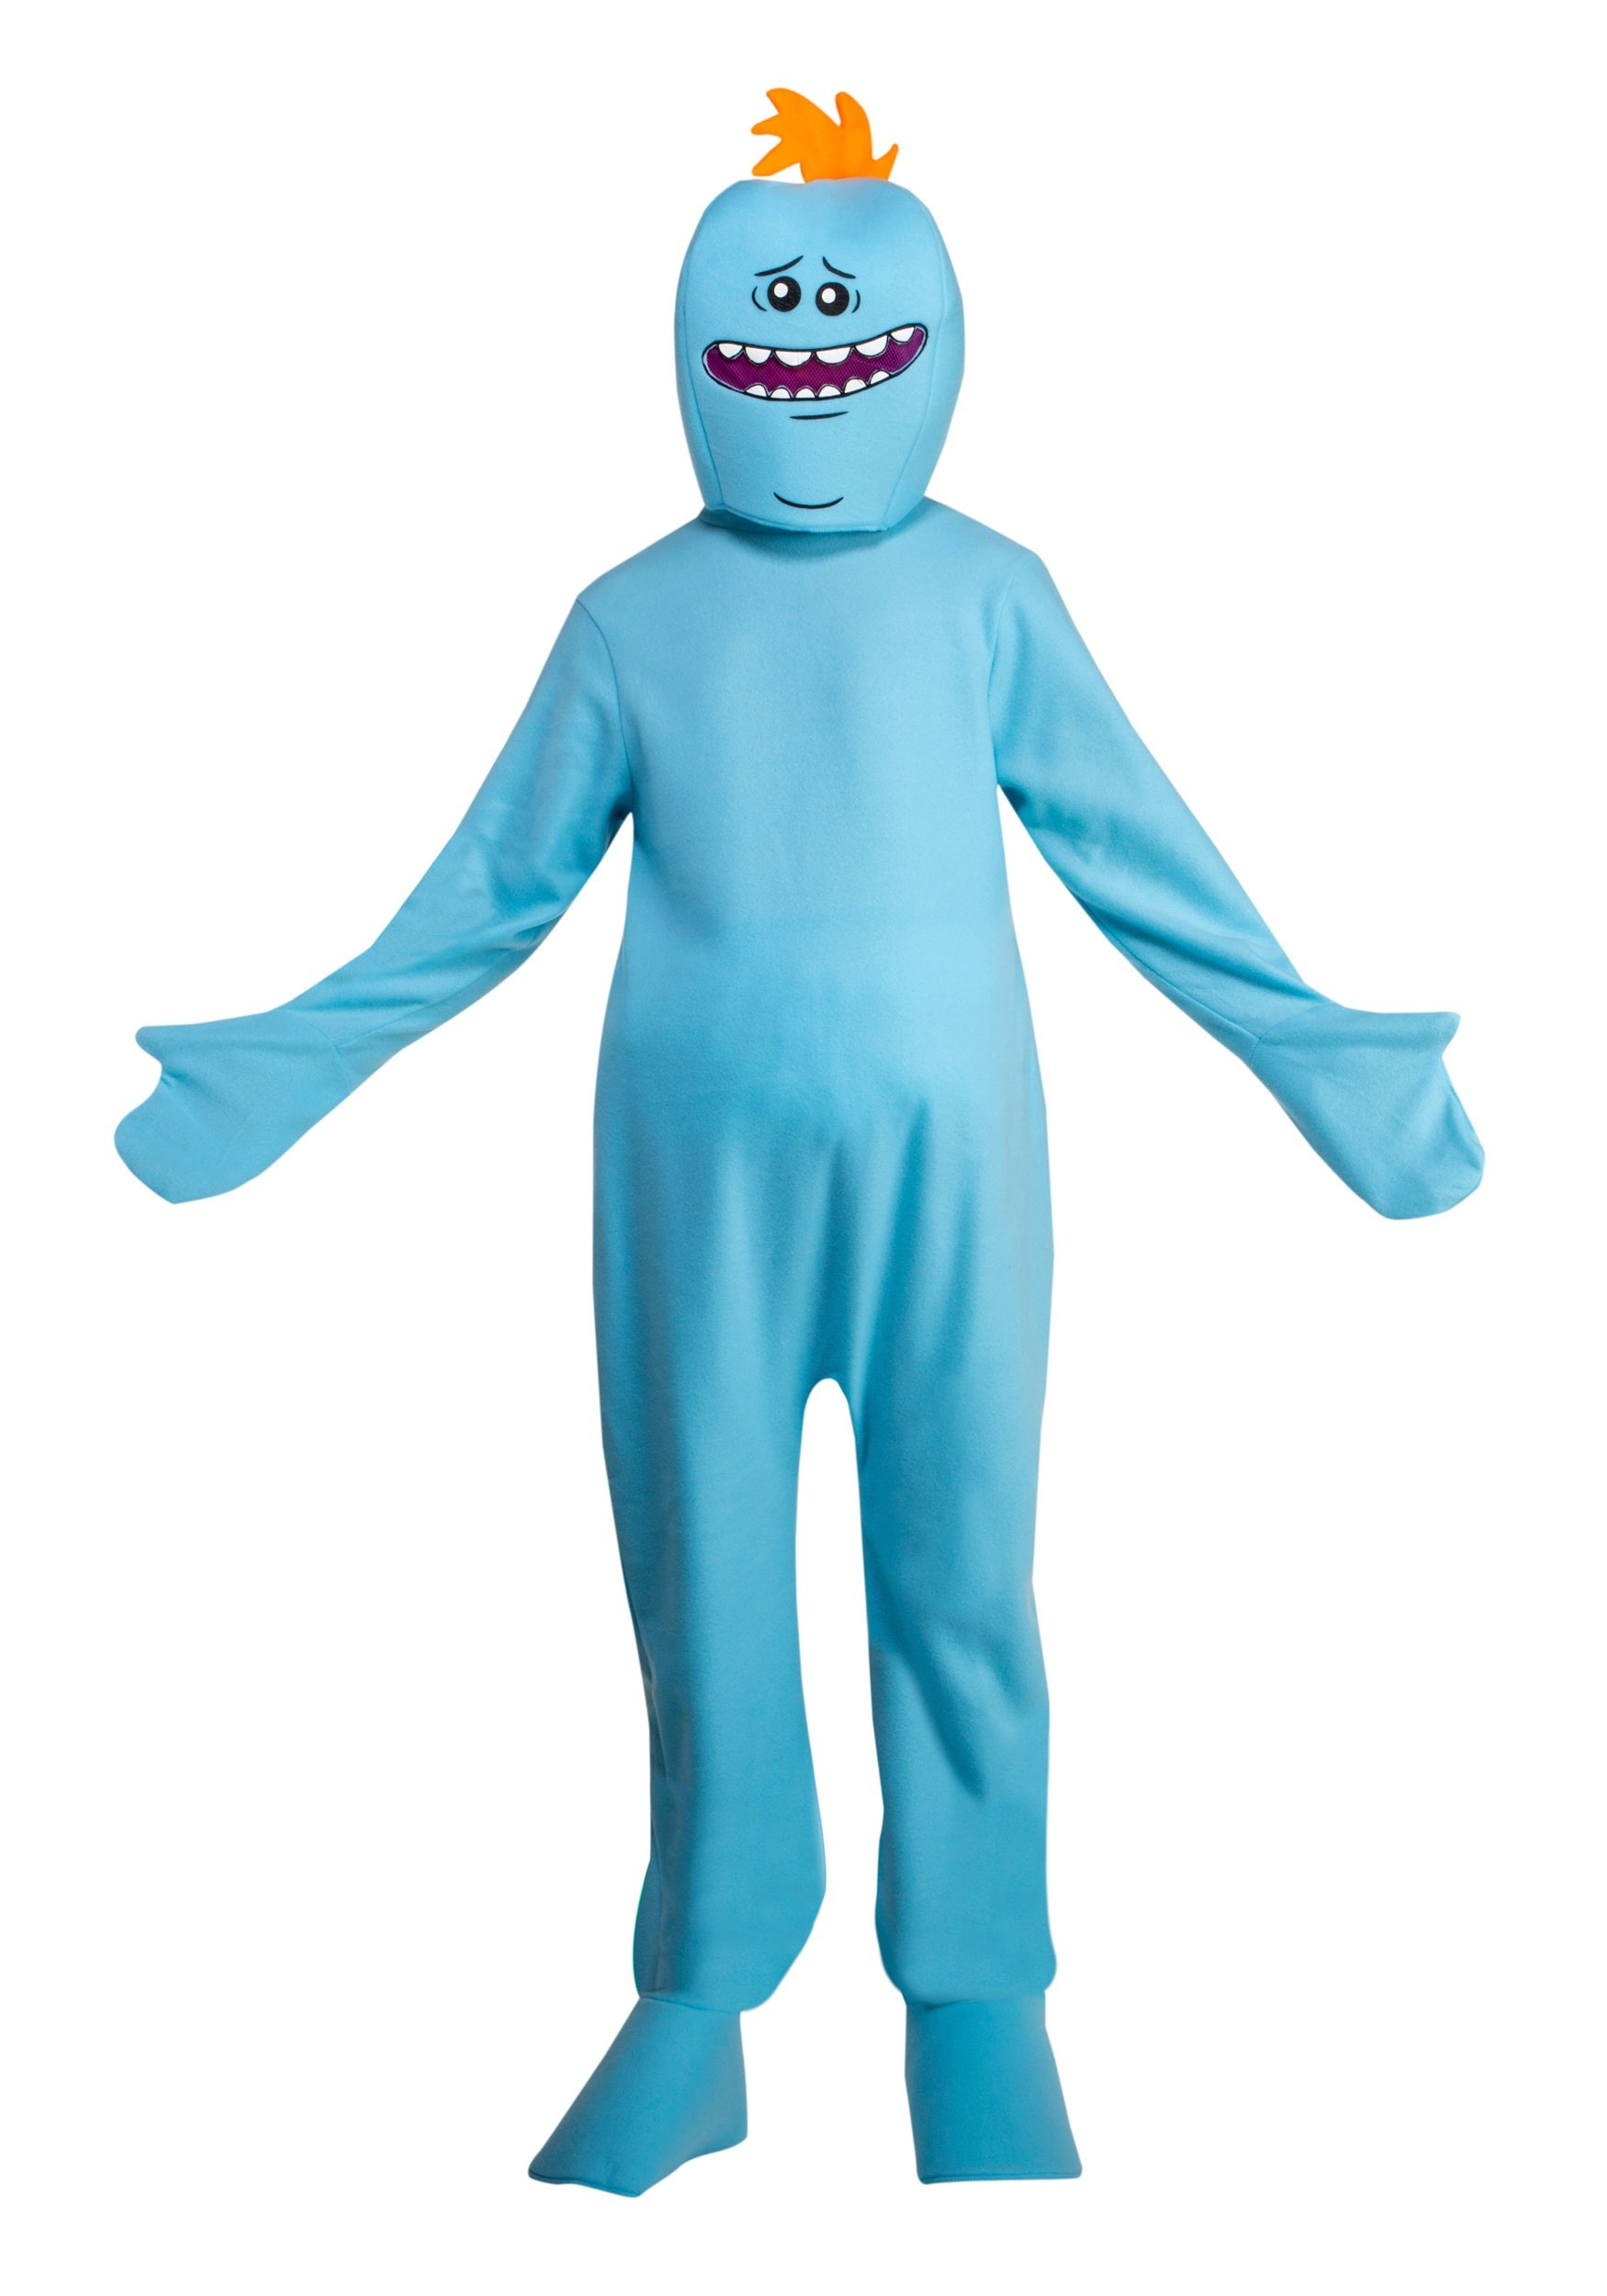 Rick and Morty Mr. Meeseeks Adult Fancy Dress Costume